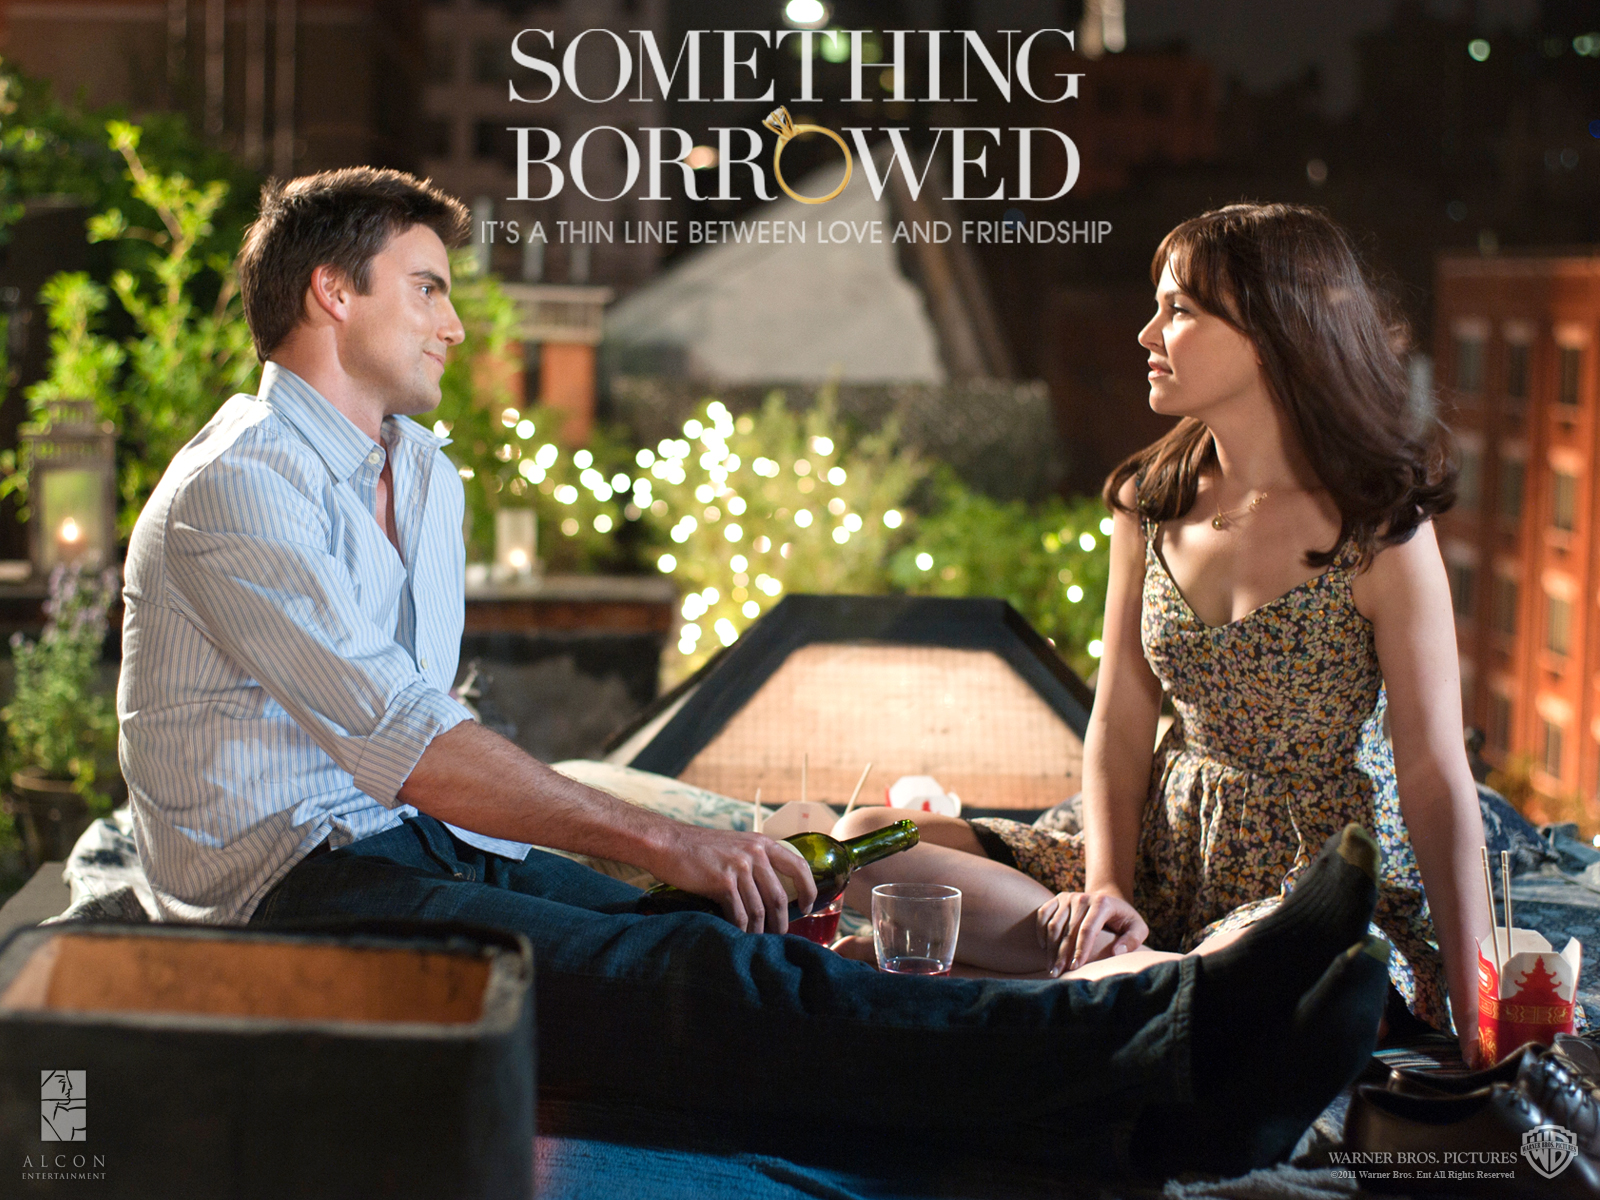 http://3.bp.blogspot.com/-GAga5lGl4Zg/Trl7_pAfdyI/AAAAAAAABsI/ZSNTxGOUbeo/s1600/something-borrowed-movie.jpg